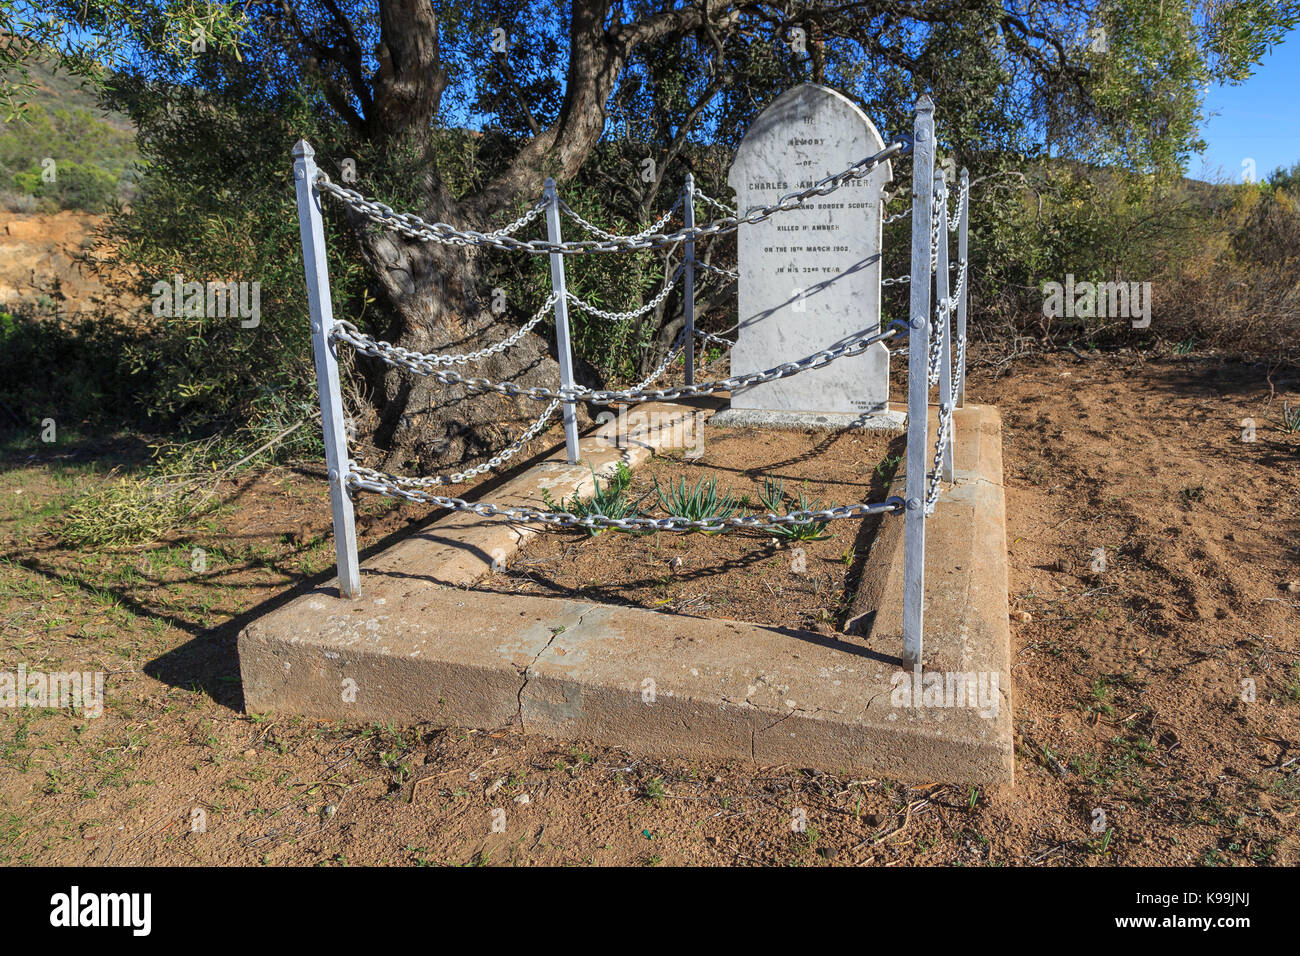 The grave of Charles James Darter, of the British Army.  Darter was killed in an ambush during the Boer War in 1902. Stock Photo